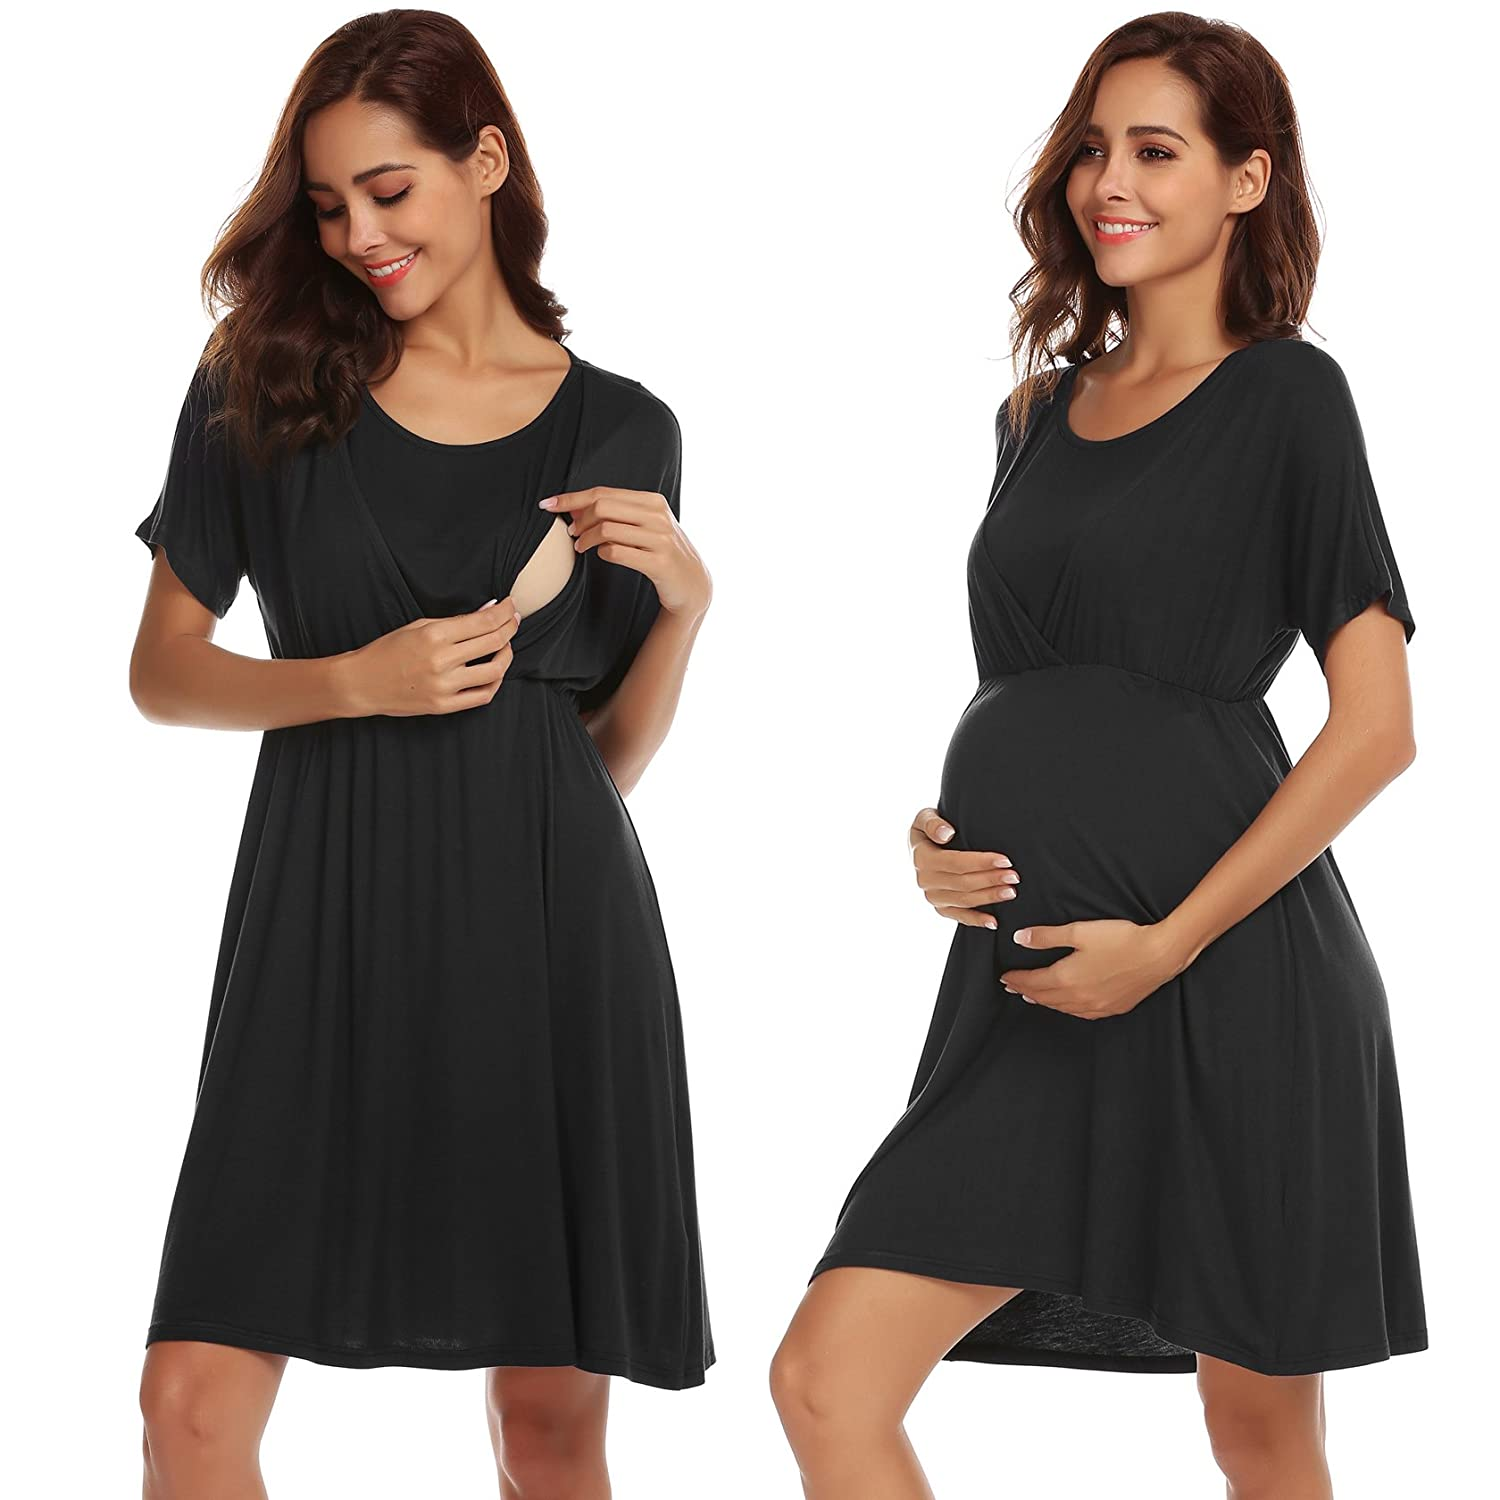 da6d2d27967 V Neckline, button down sleep shirts style of this nightshirt is  elegant.Opening button off for an easy access to breastfeeding.